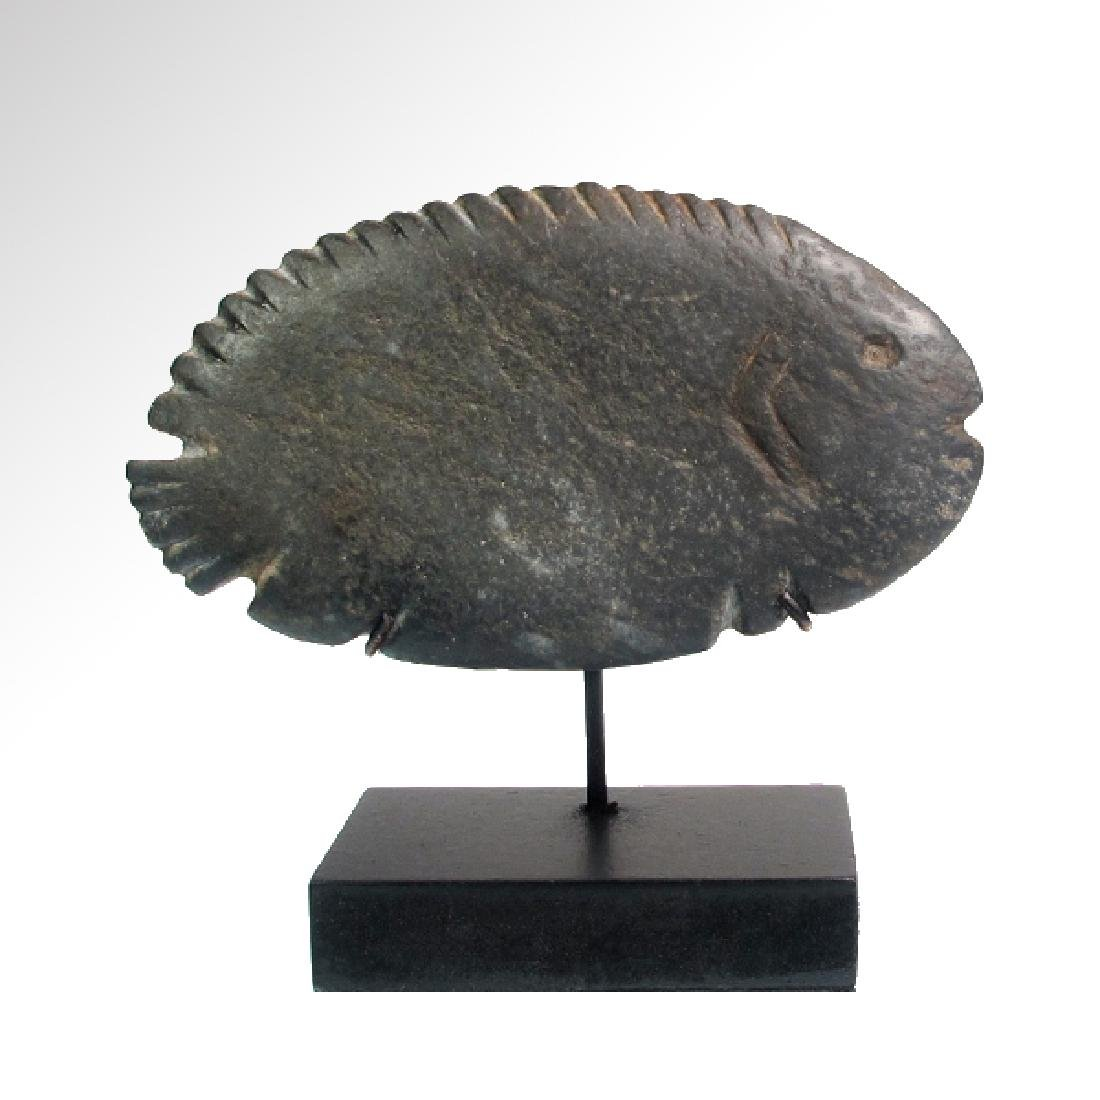 Egyptian Schist Palette in the form of a Fish, Naqqada